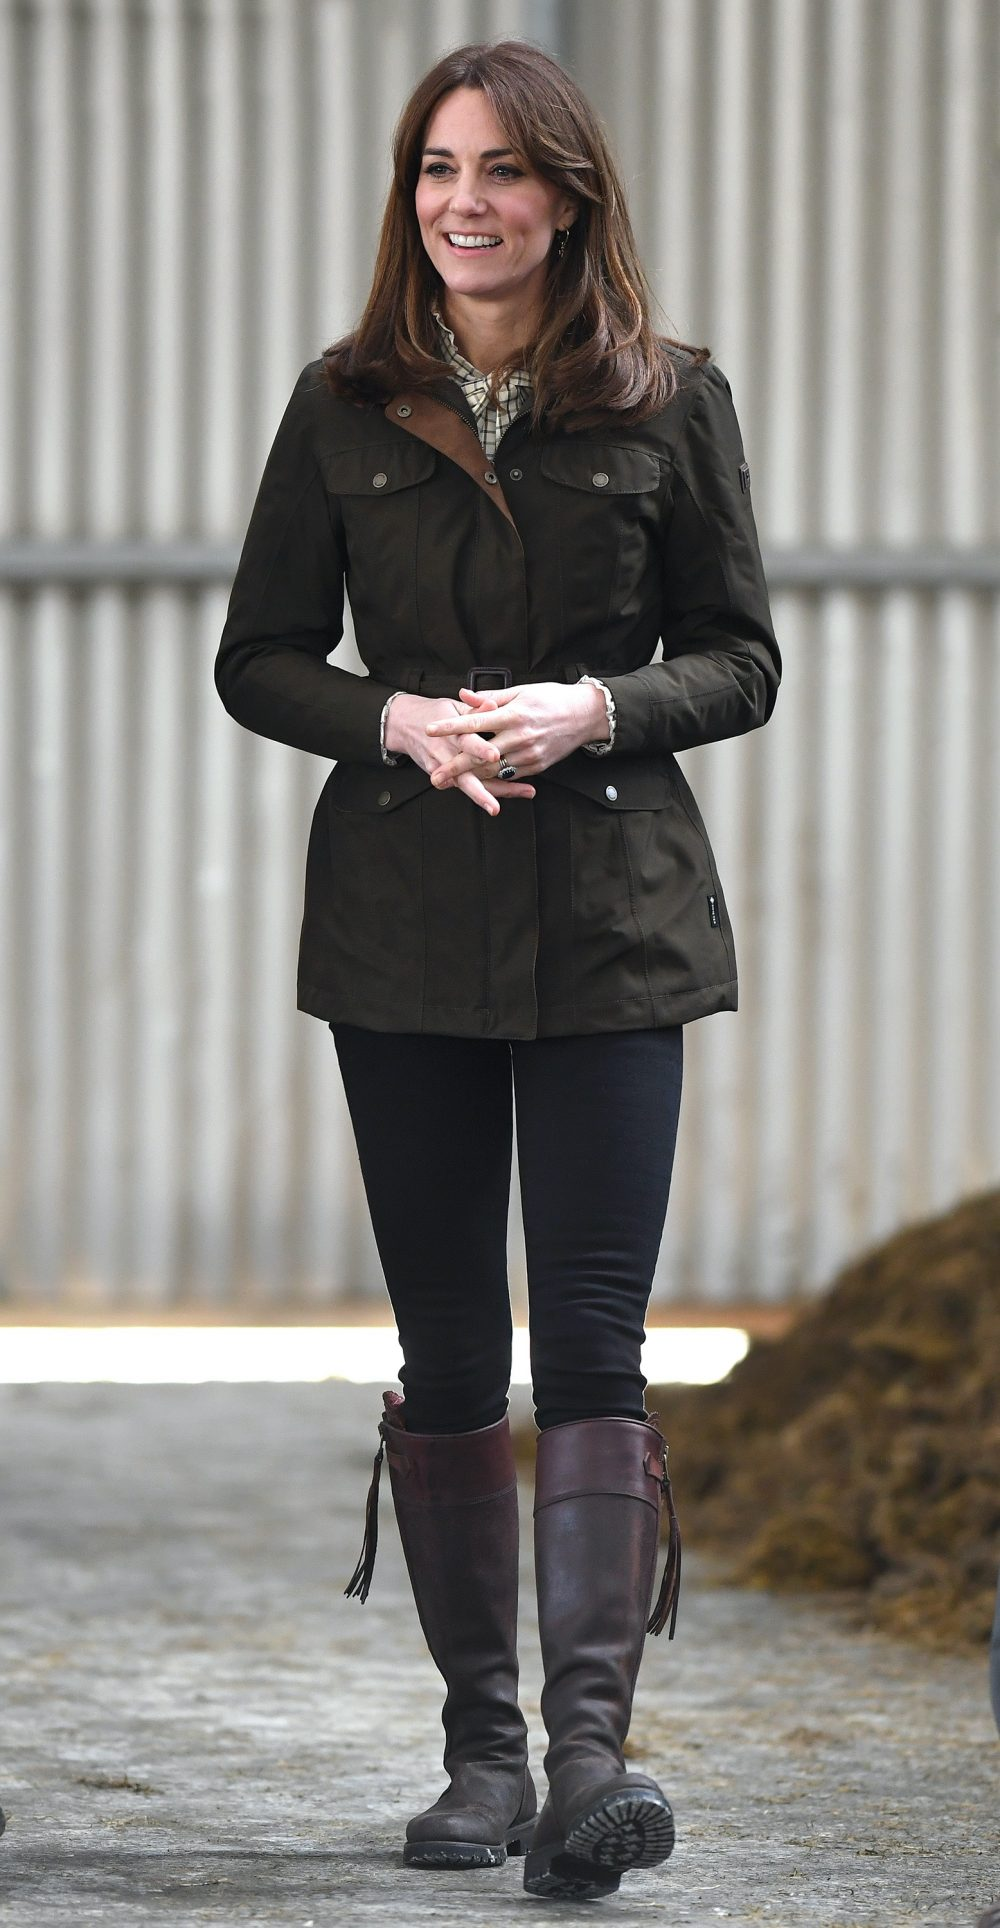 The Duke and Duchess of Cambridge visit Teagasc Research Farm